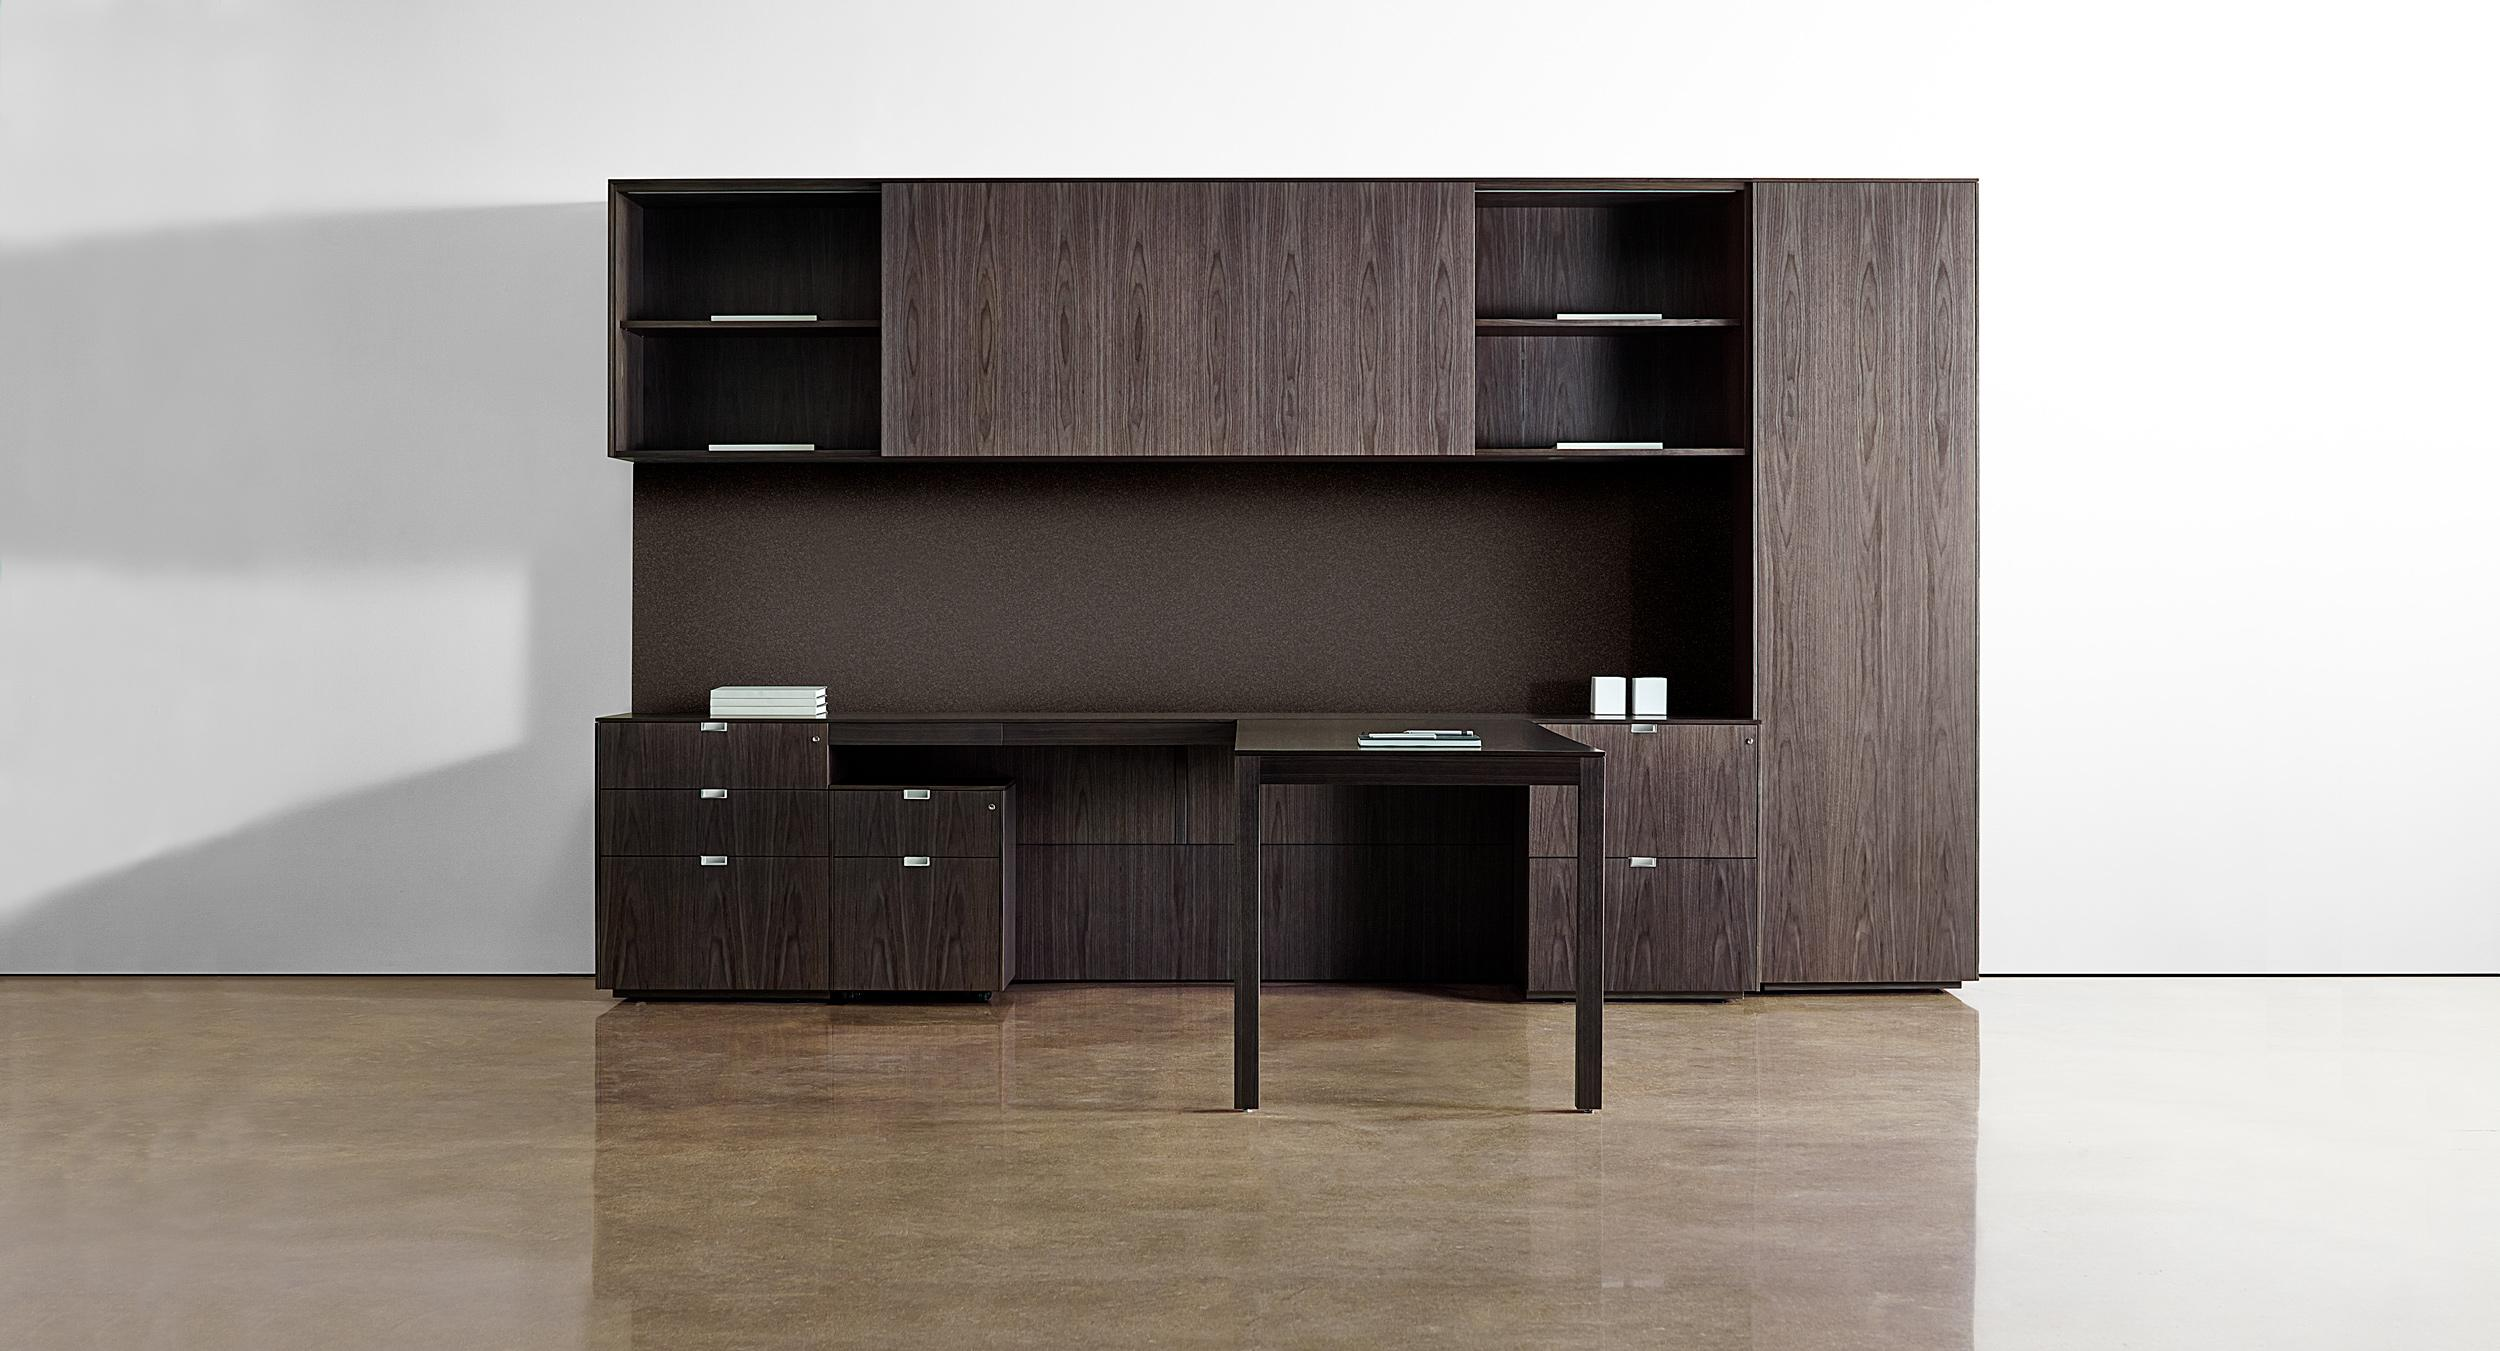 Casework is available in multiple sizes and configurations to precisely meet your work and storage needs.